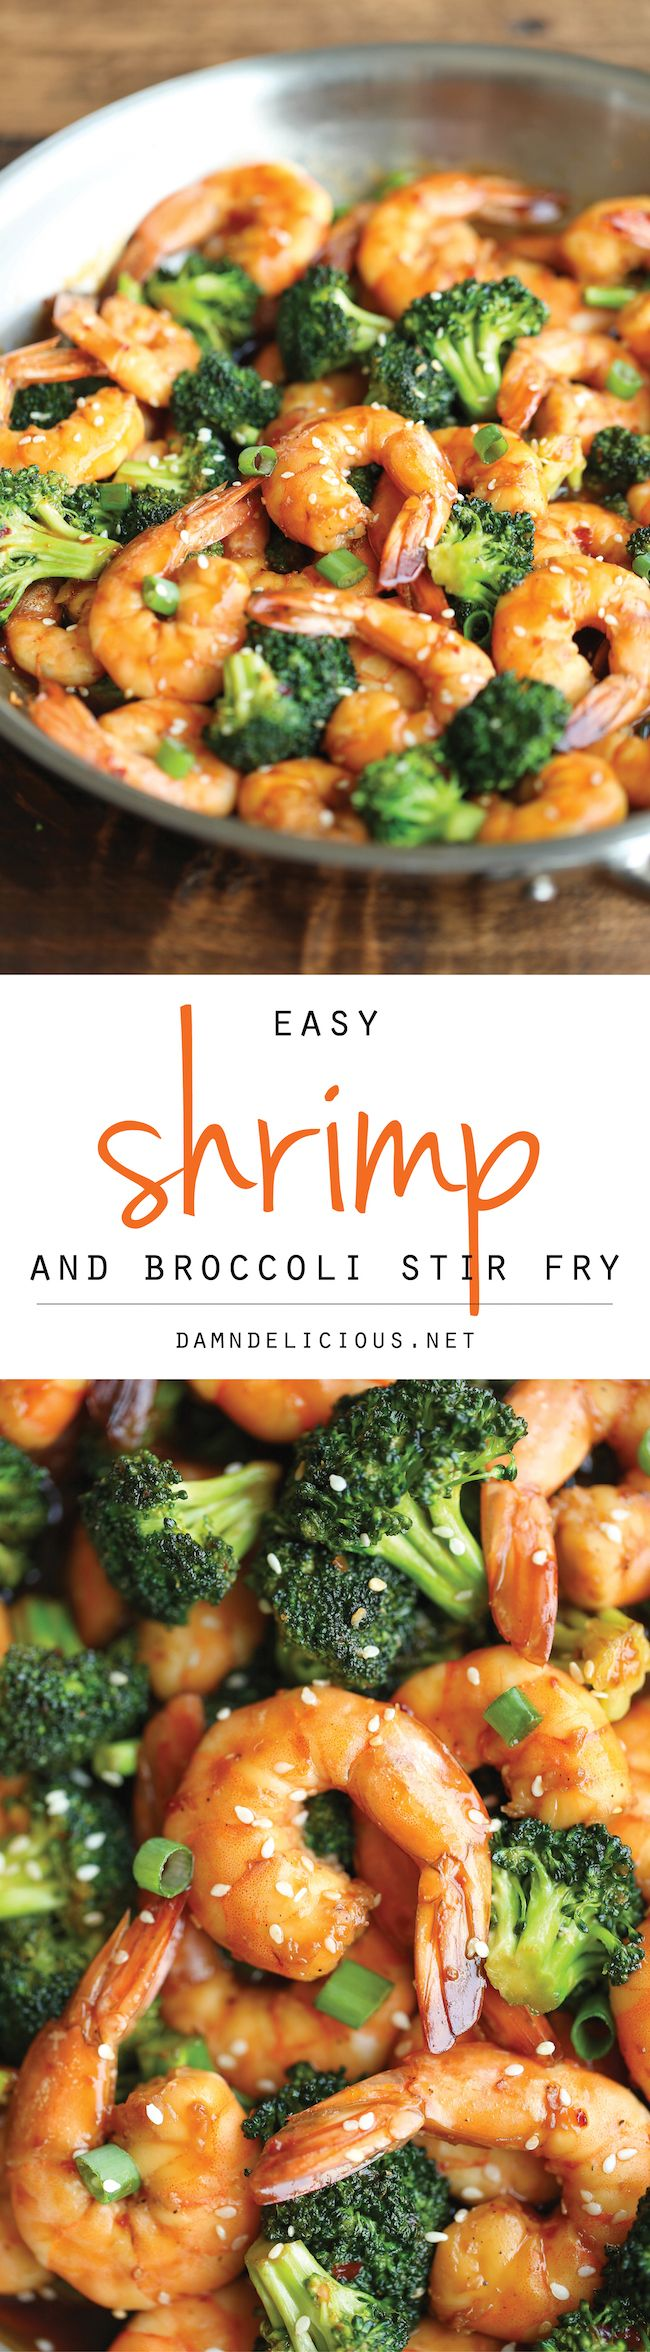 546 best chinese food images on pinterest cooking food asian food easy shrimp and broccoli stir fry forumfinder Choice Image